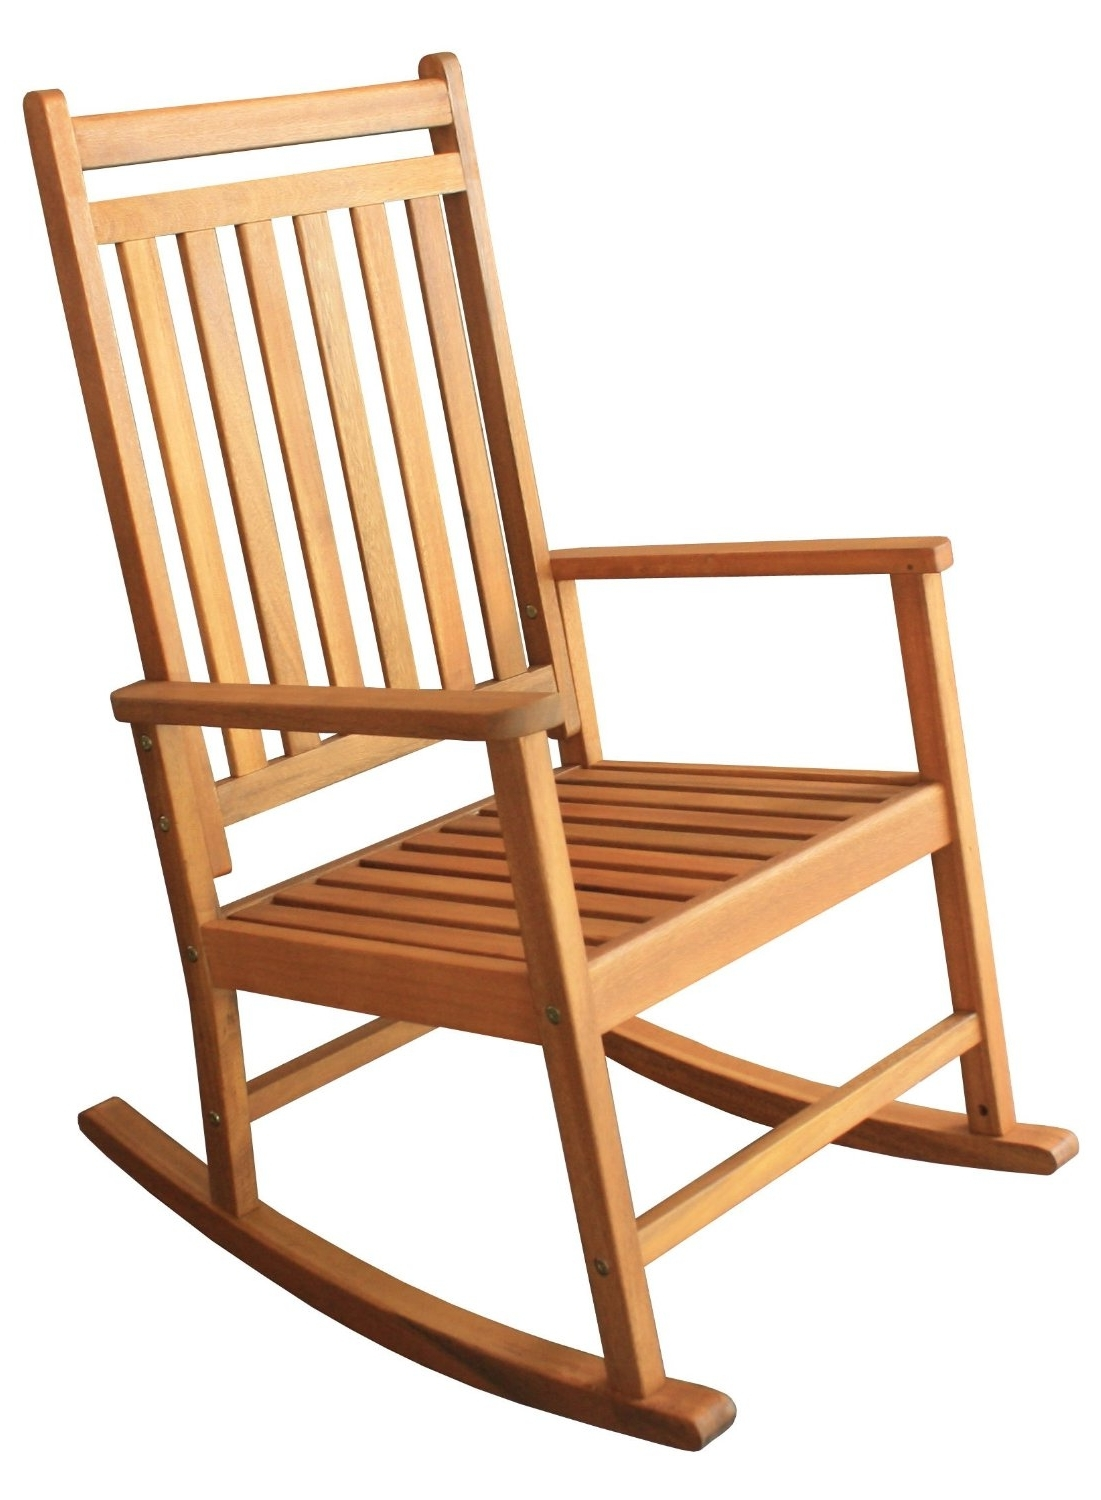 Rocking Chair Outdoor Wooden Regarding Newest Wood Rocking Chair Images – Wood Rocking Chair Buying Considerations (View 14 of 20)